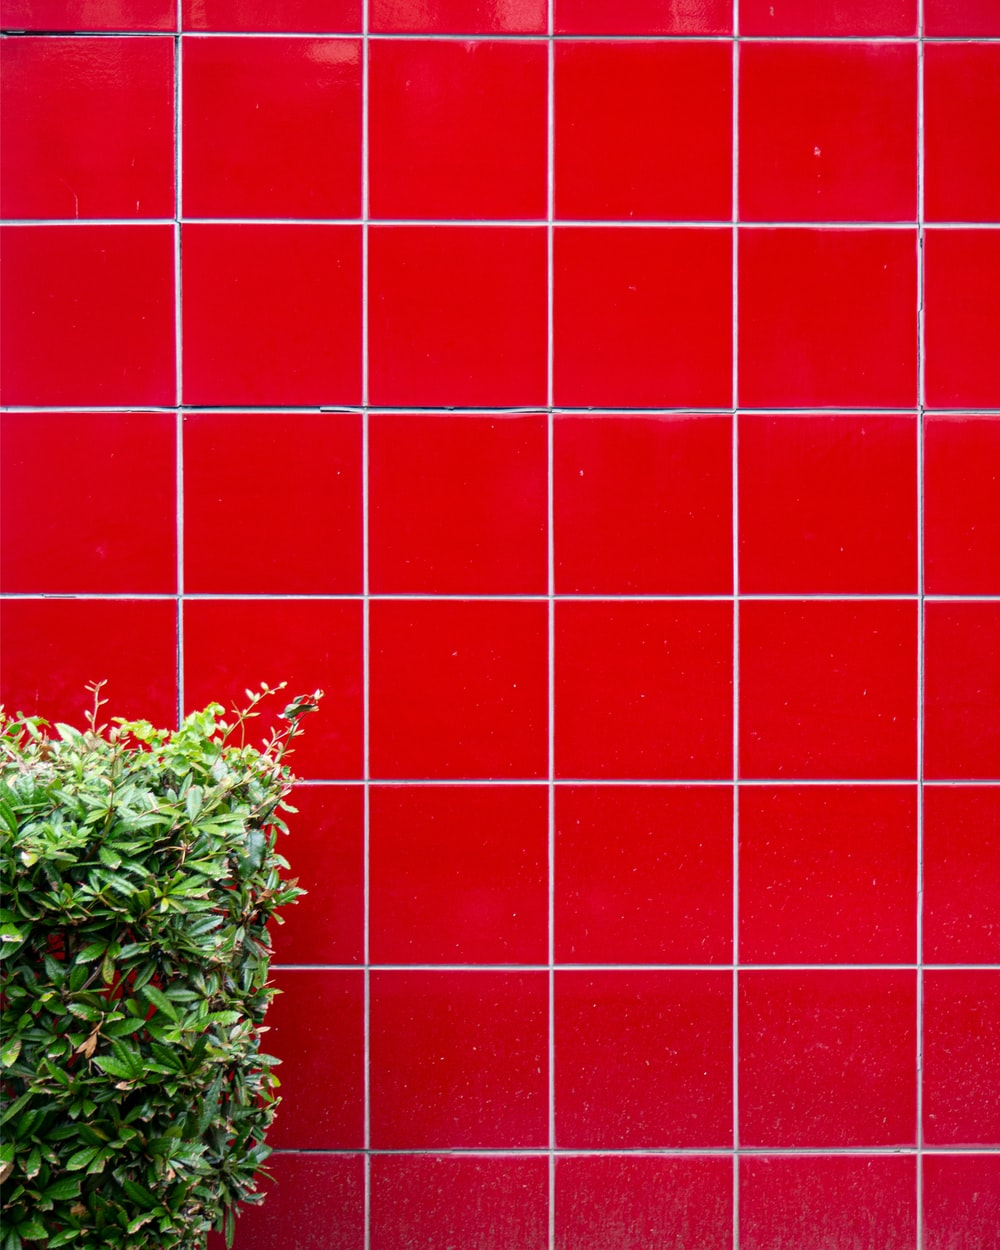 green plant on red wall